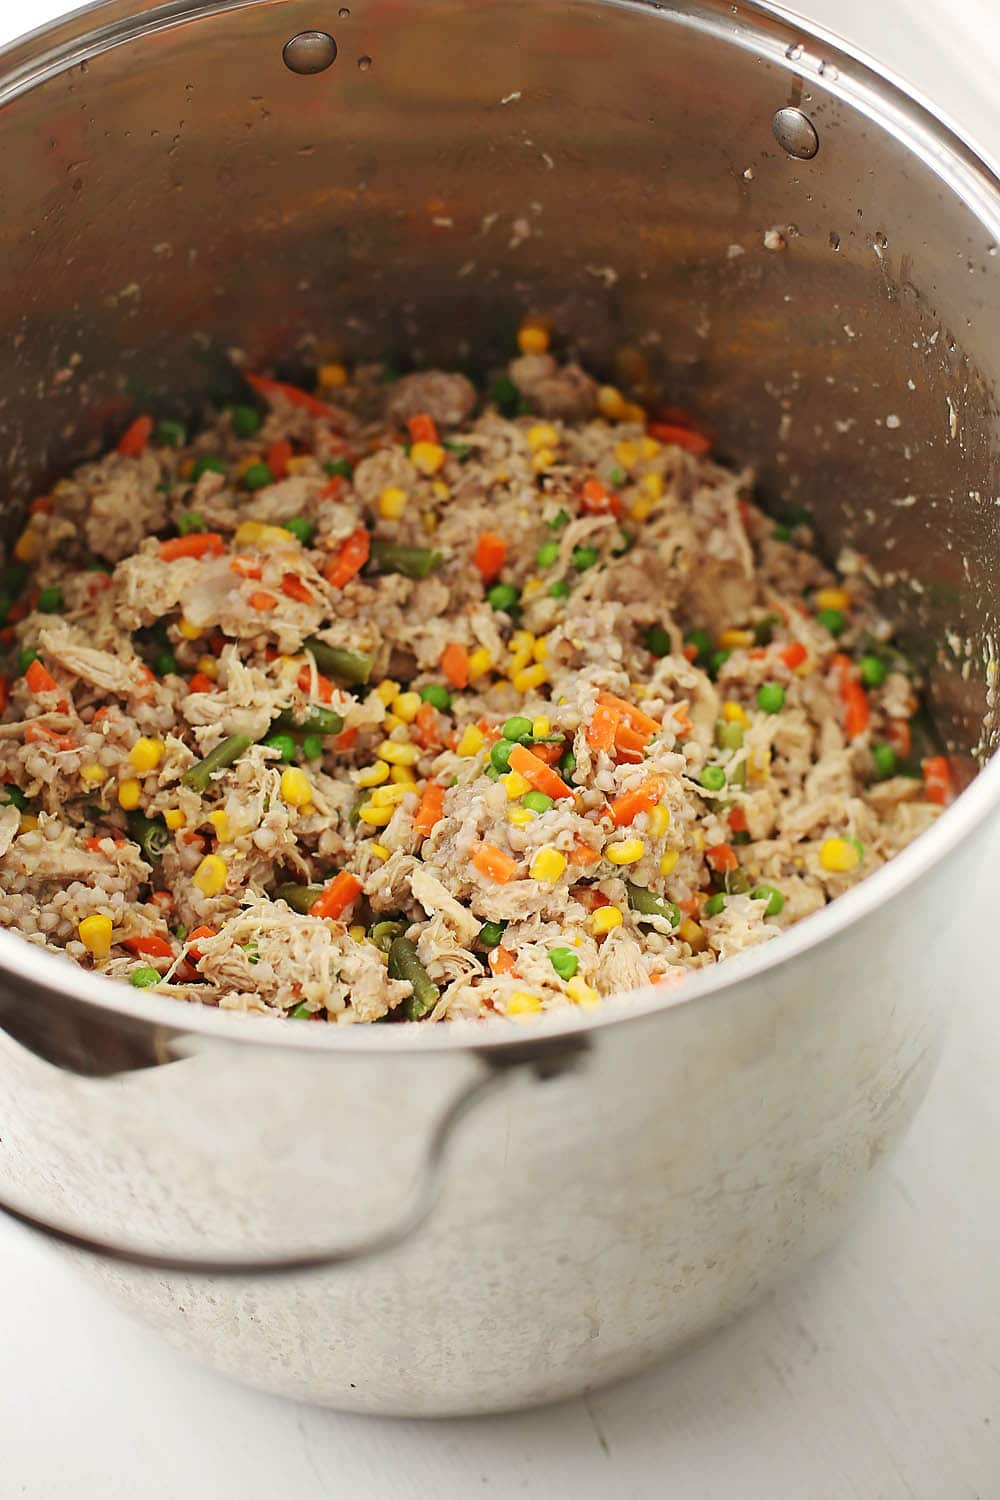 large pot filled with homemade dog food